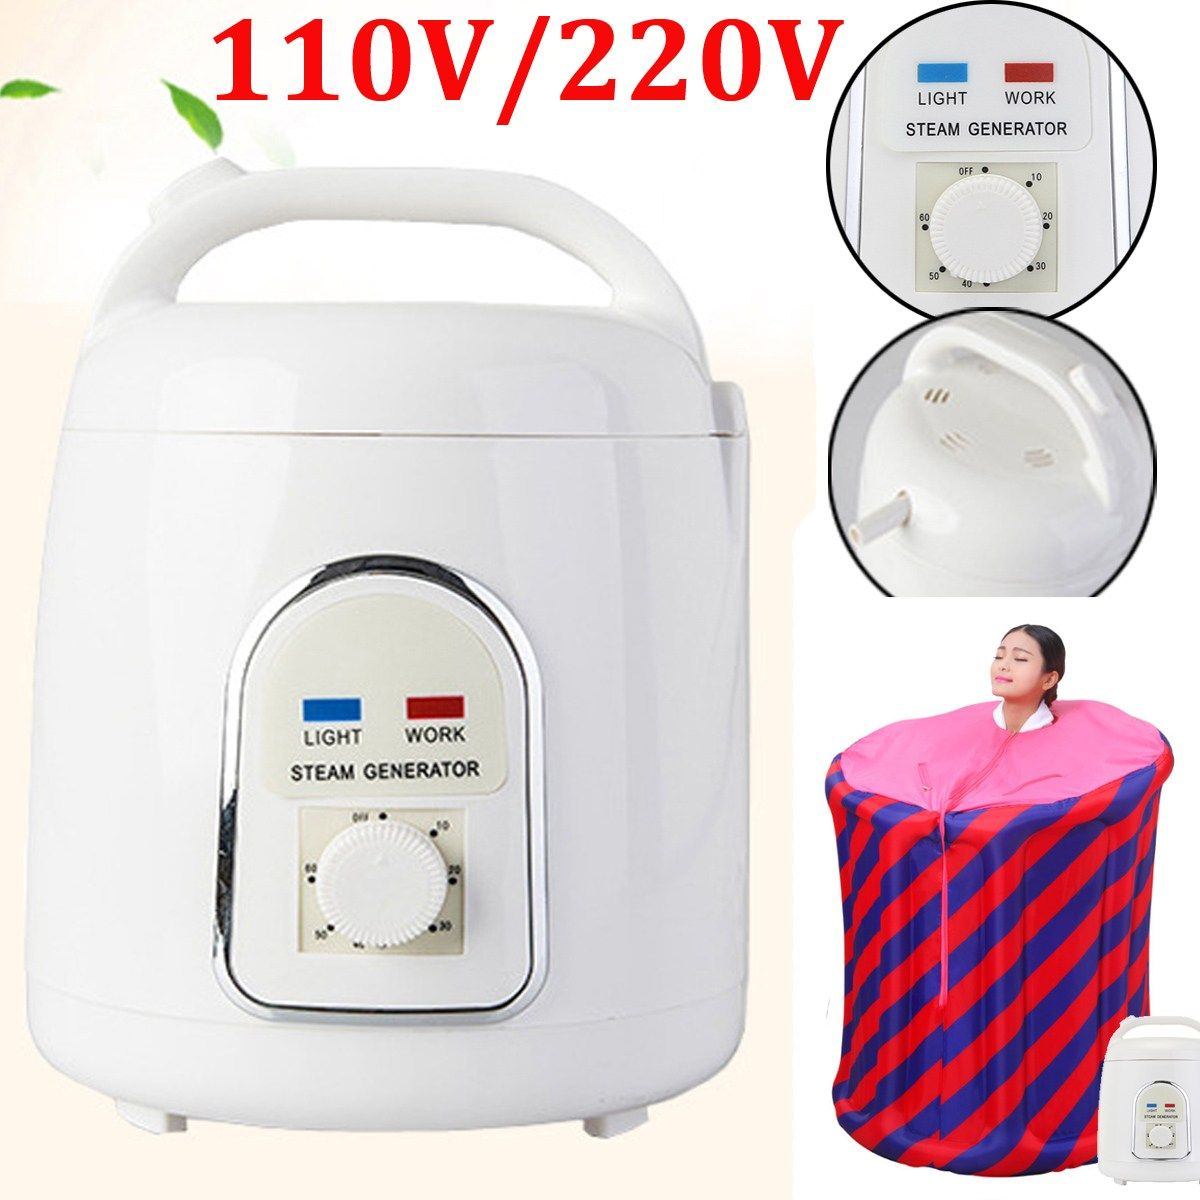 Home Steam Generator Capacity 1.8L Steamer Pot Spa for portable steam sauna spa Relaxes tired